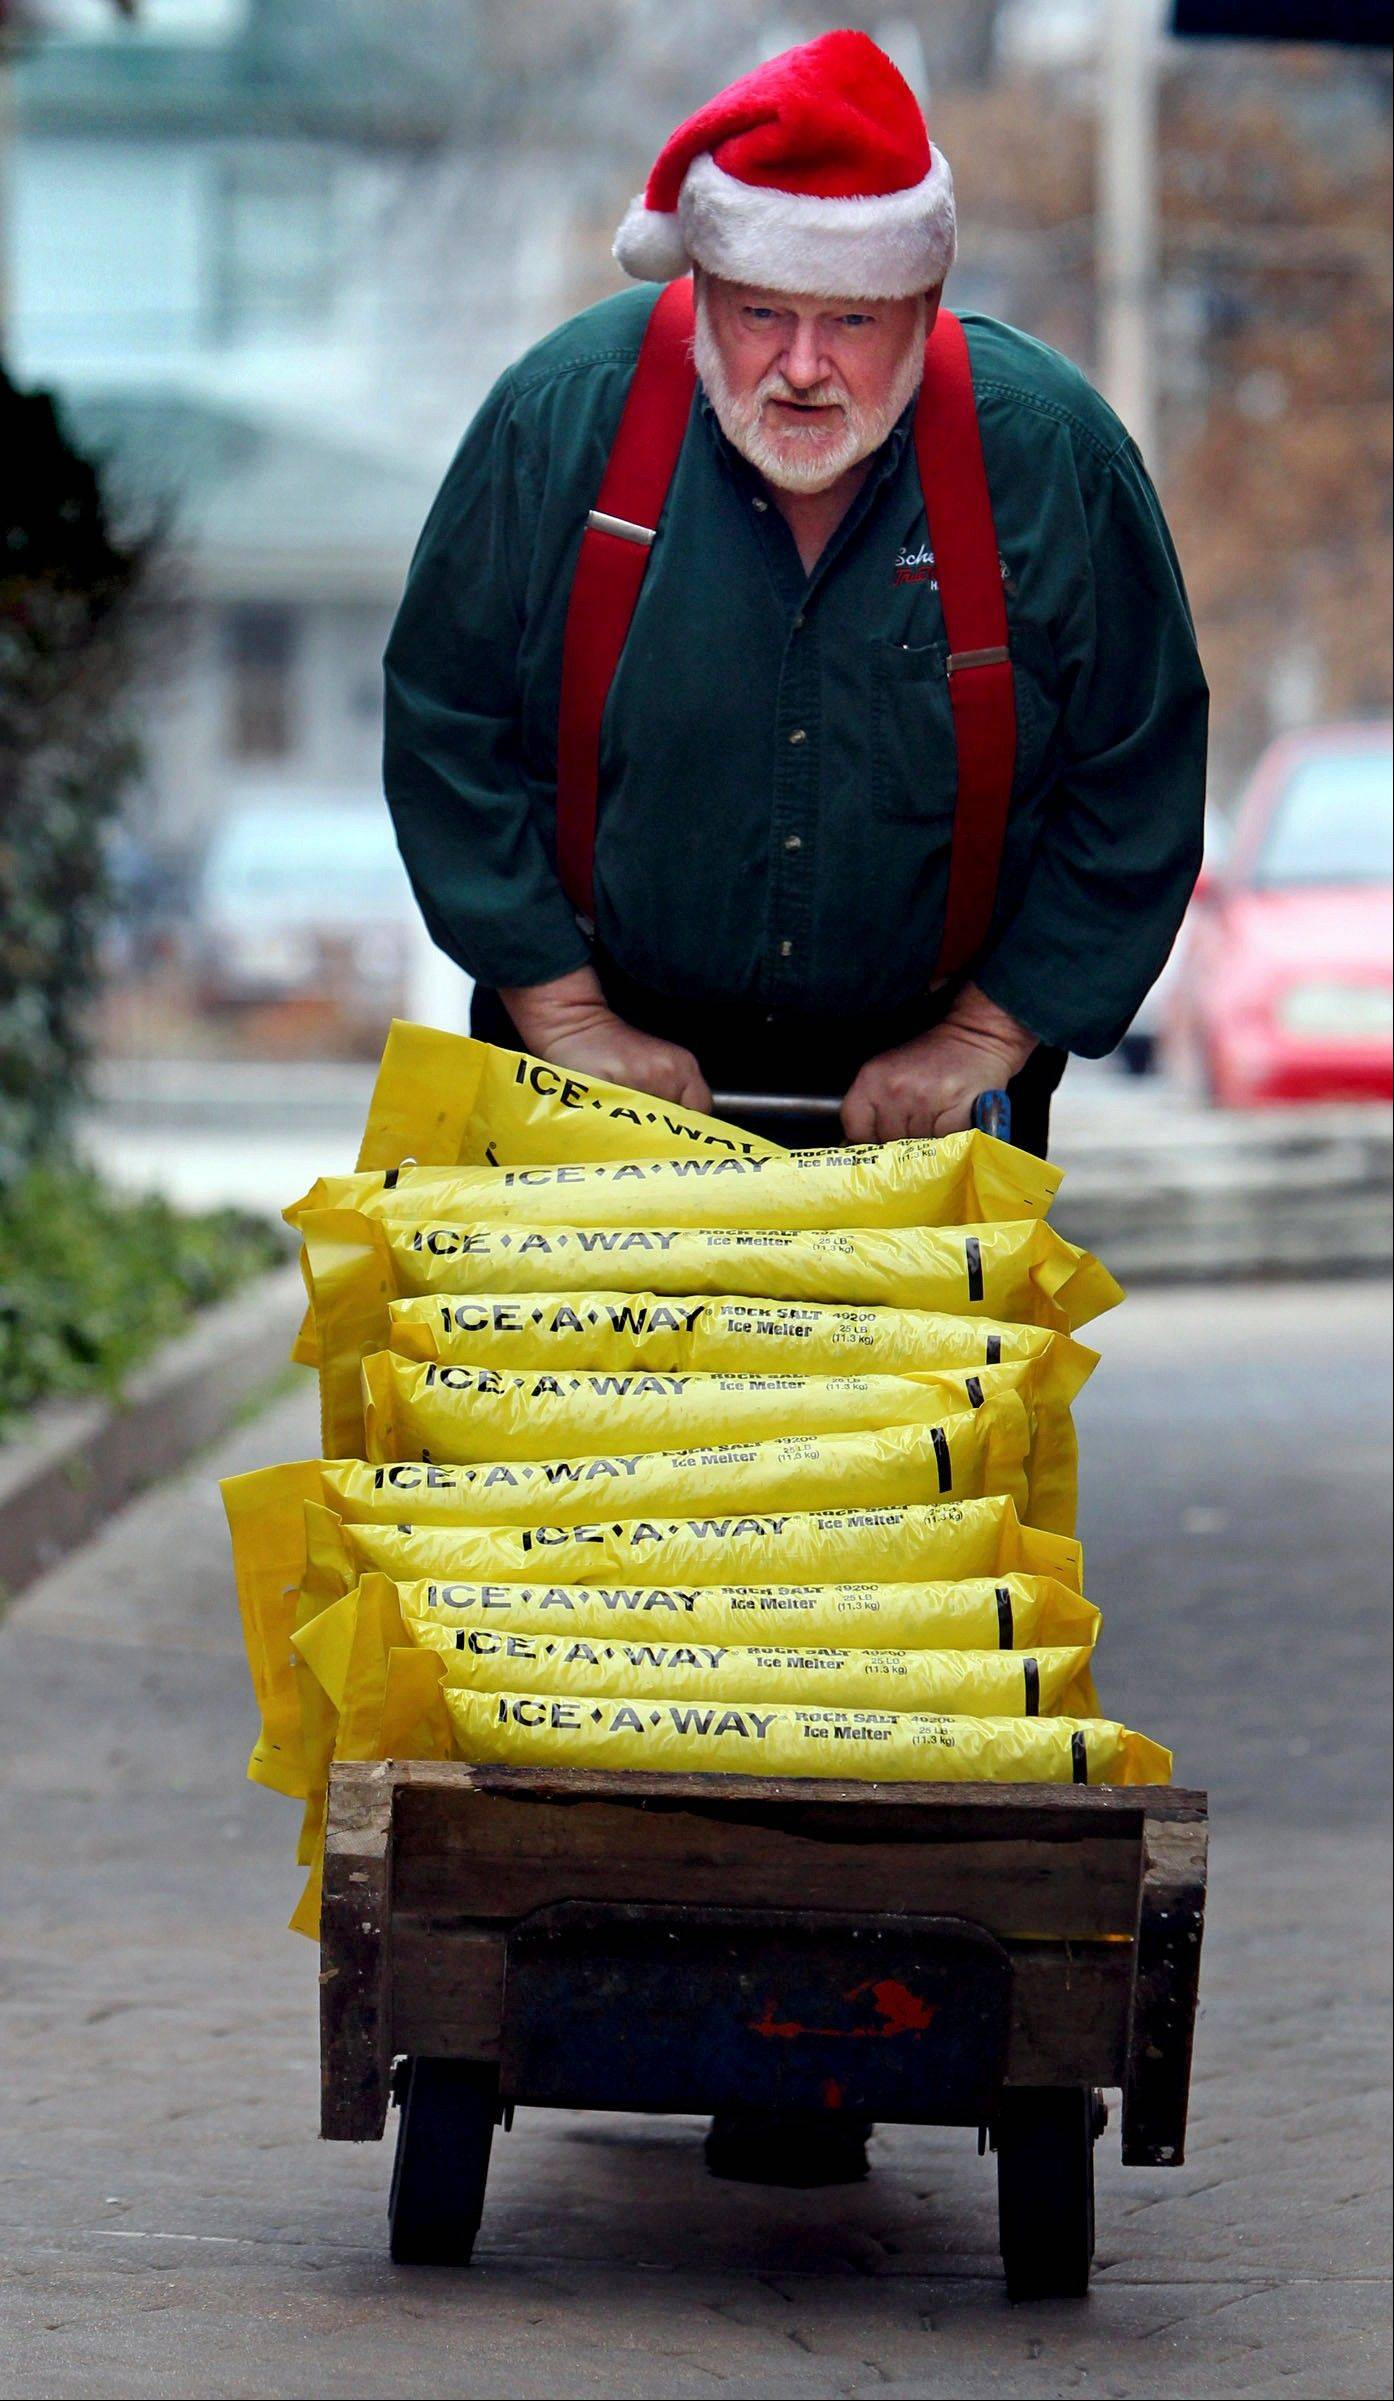 Roger McCreight, a hardware store employee, brings up the remaining bags of rock salt from the basement inventory to stock in the store for customers Monday, Dec. 24, 2012, in Maplewood, Mo., in anticipation of wintry weather.